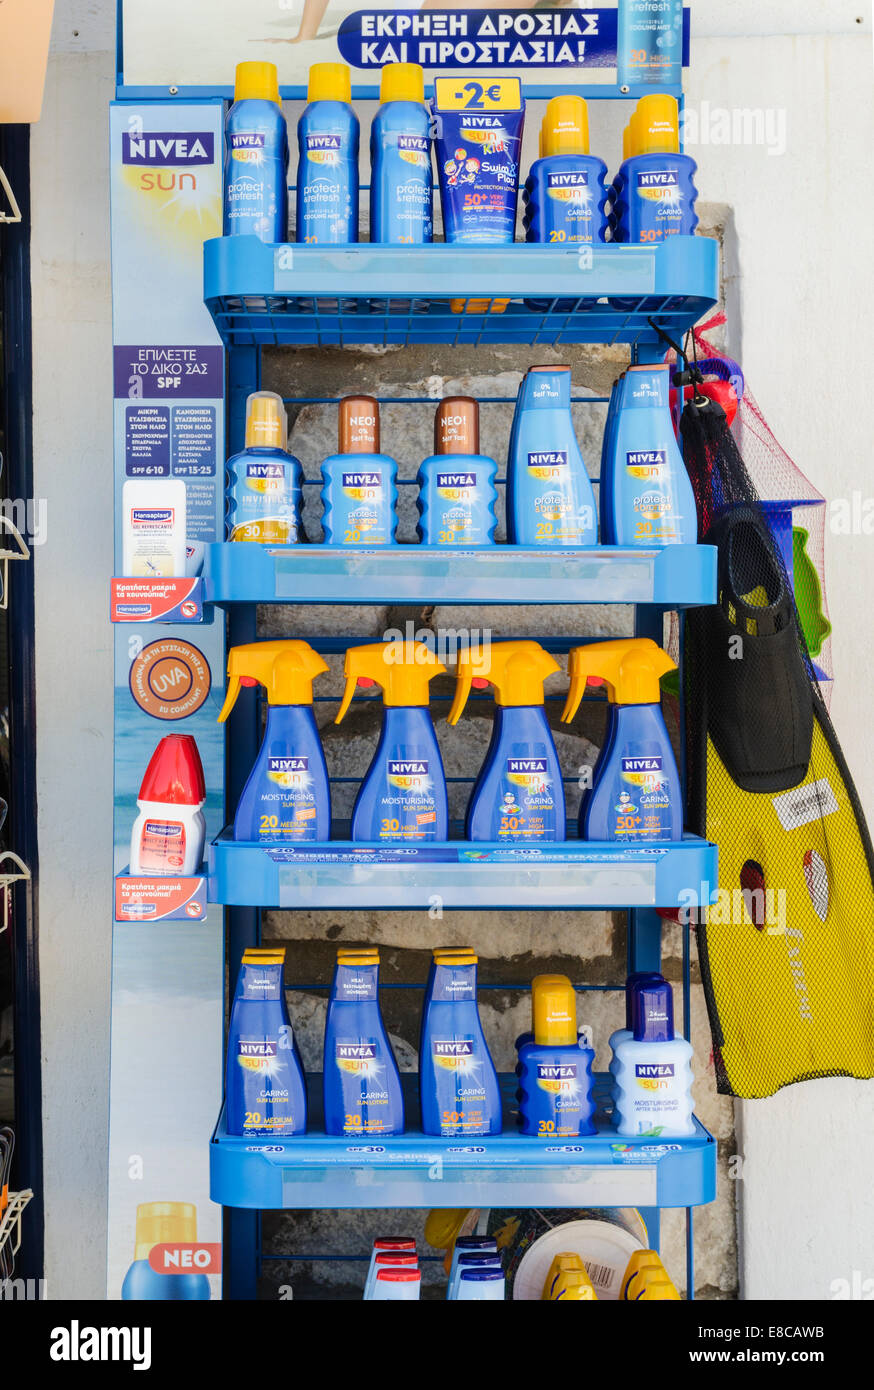 Bottles of Nivea sunscreen on a stand outside a shop in the Greek Islands - Stock Image